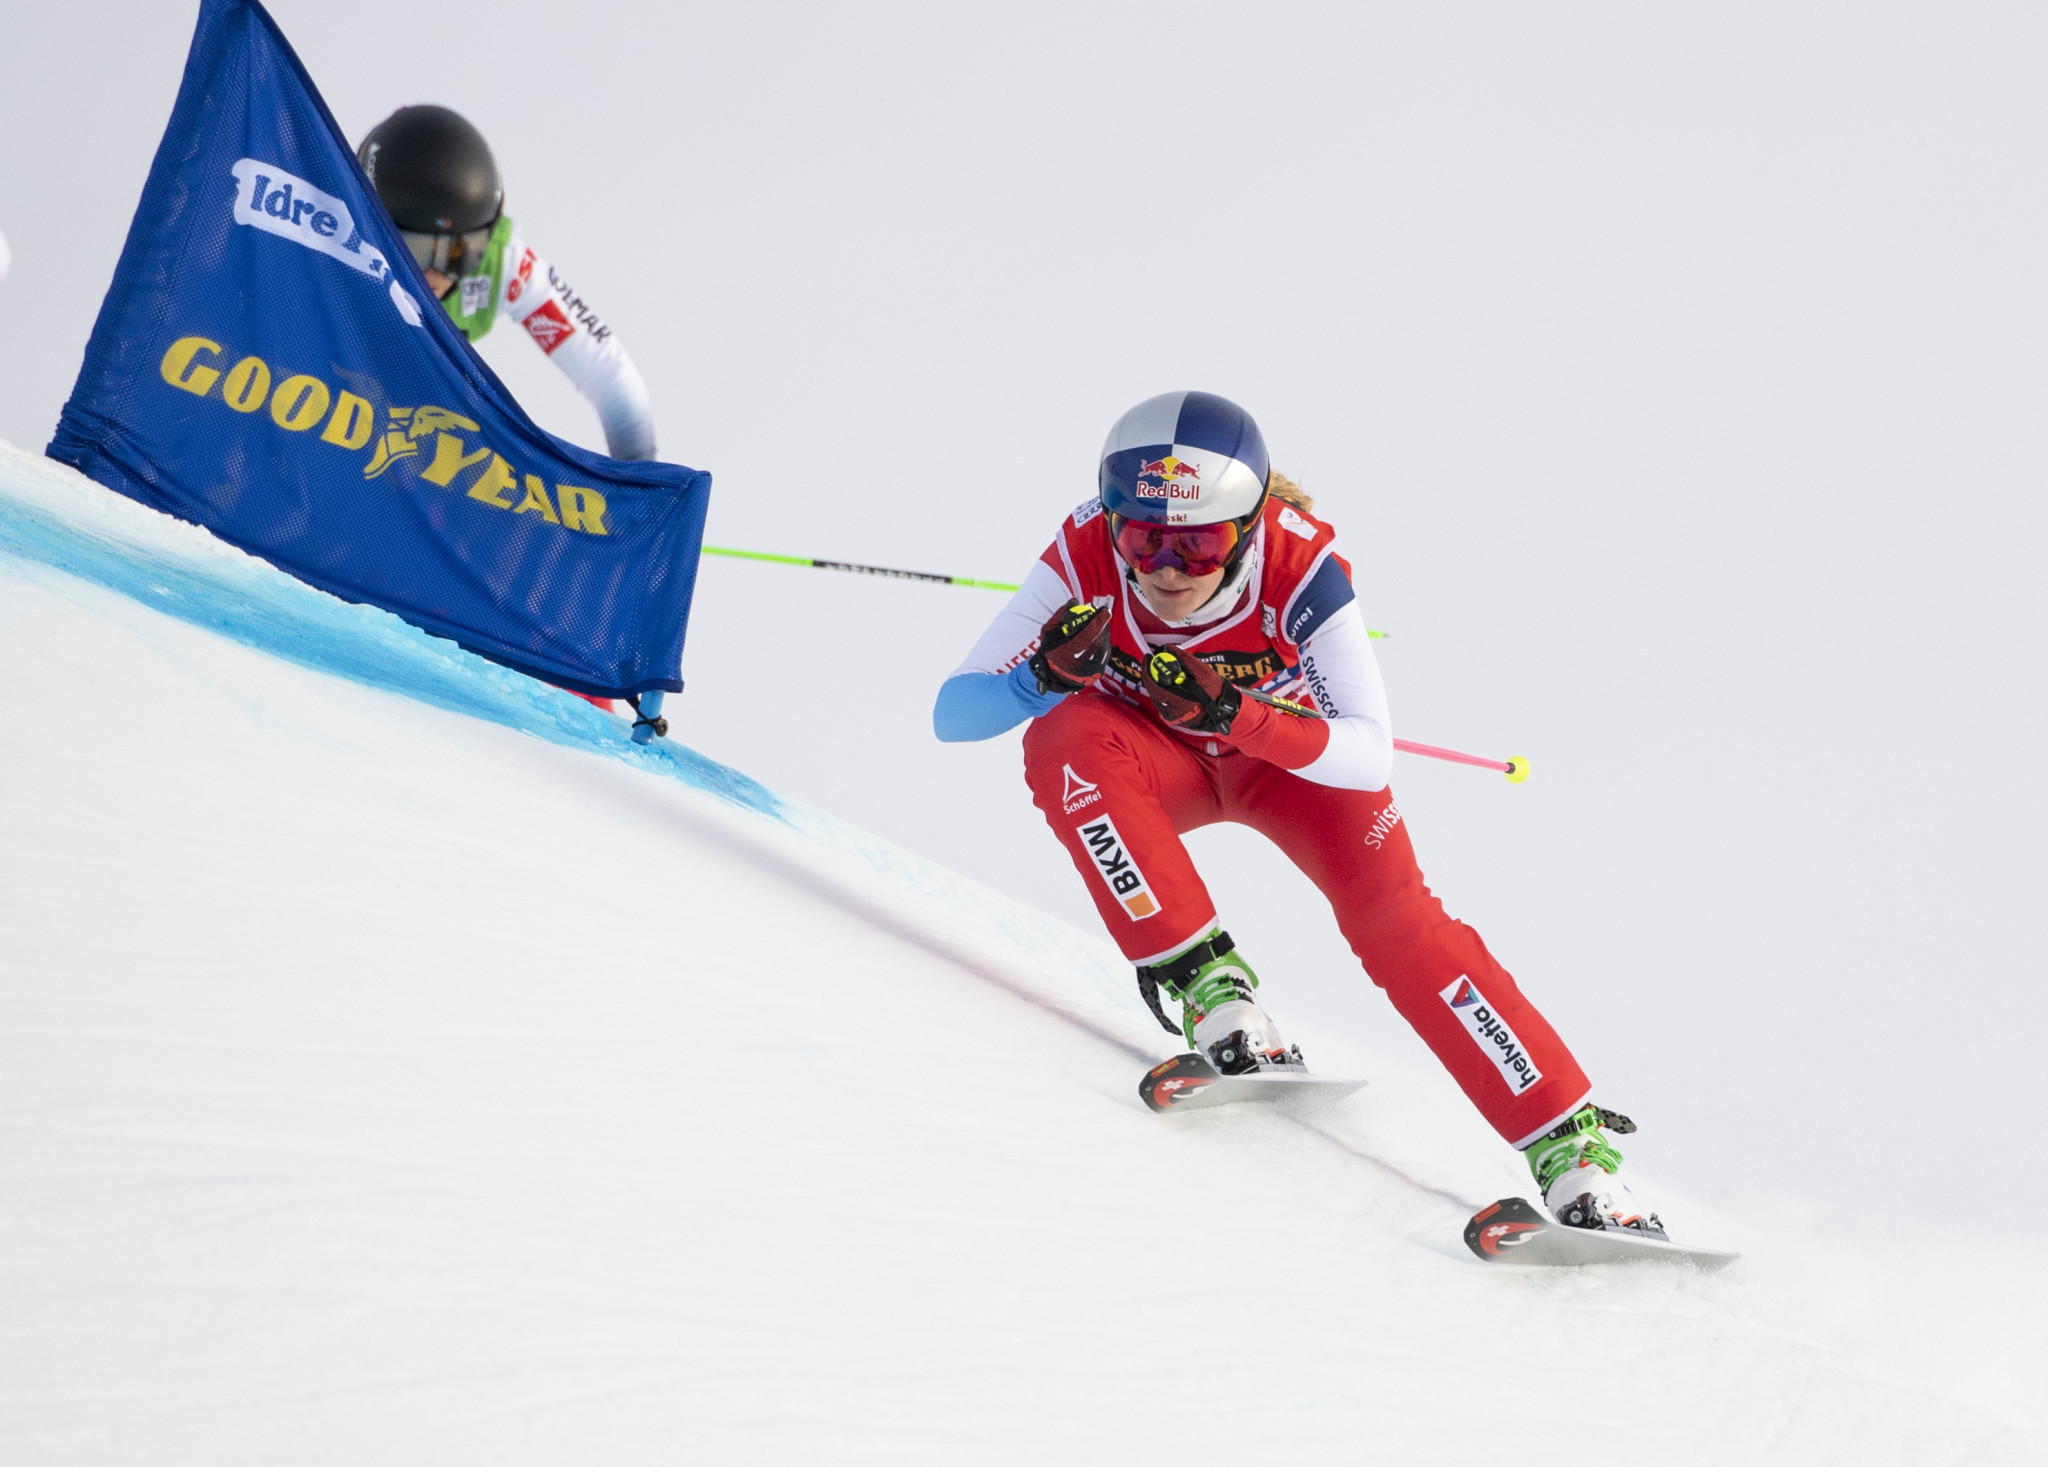 Smith triumphs again in Sunny Valley to boost FIS Ski Cross World Cup hopes